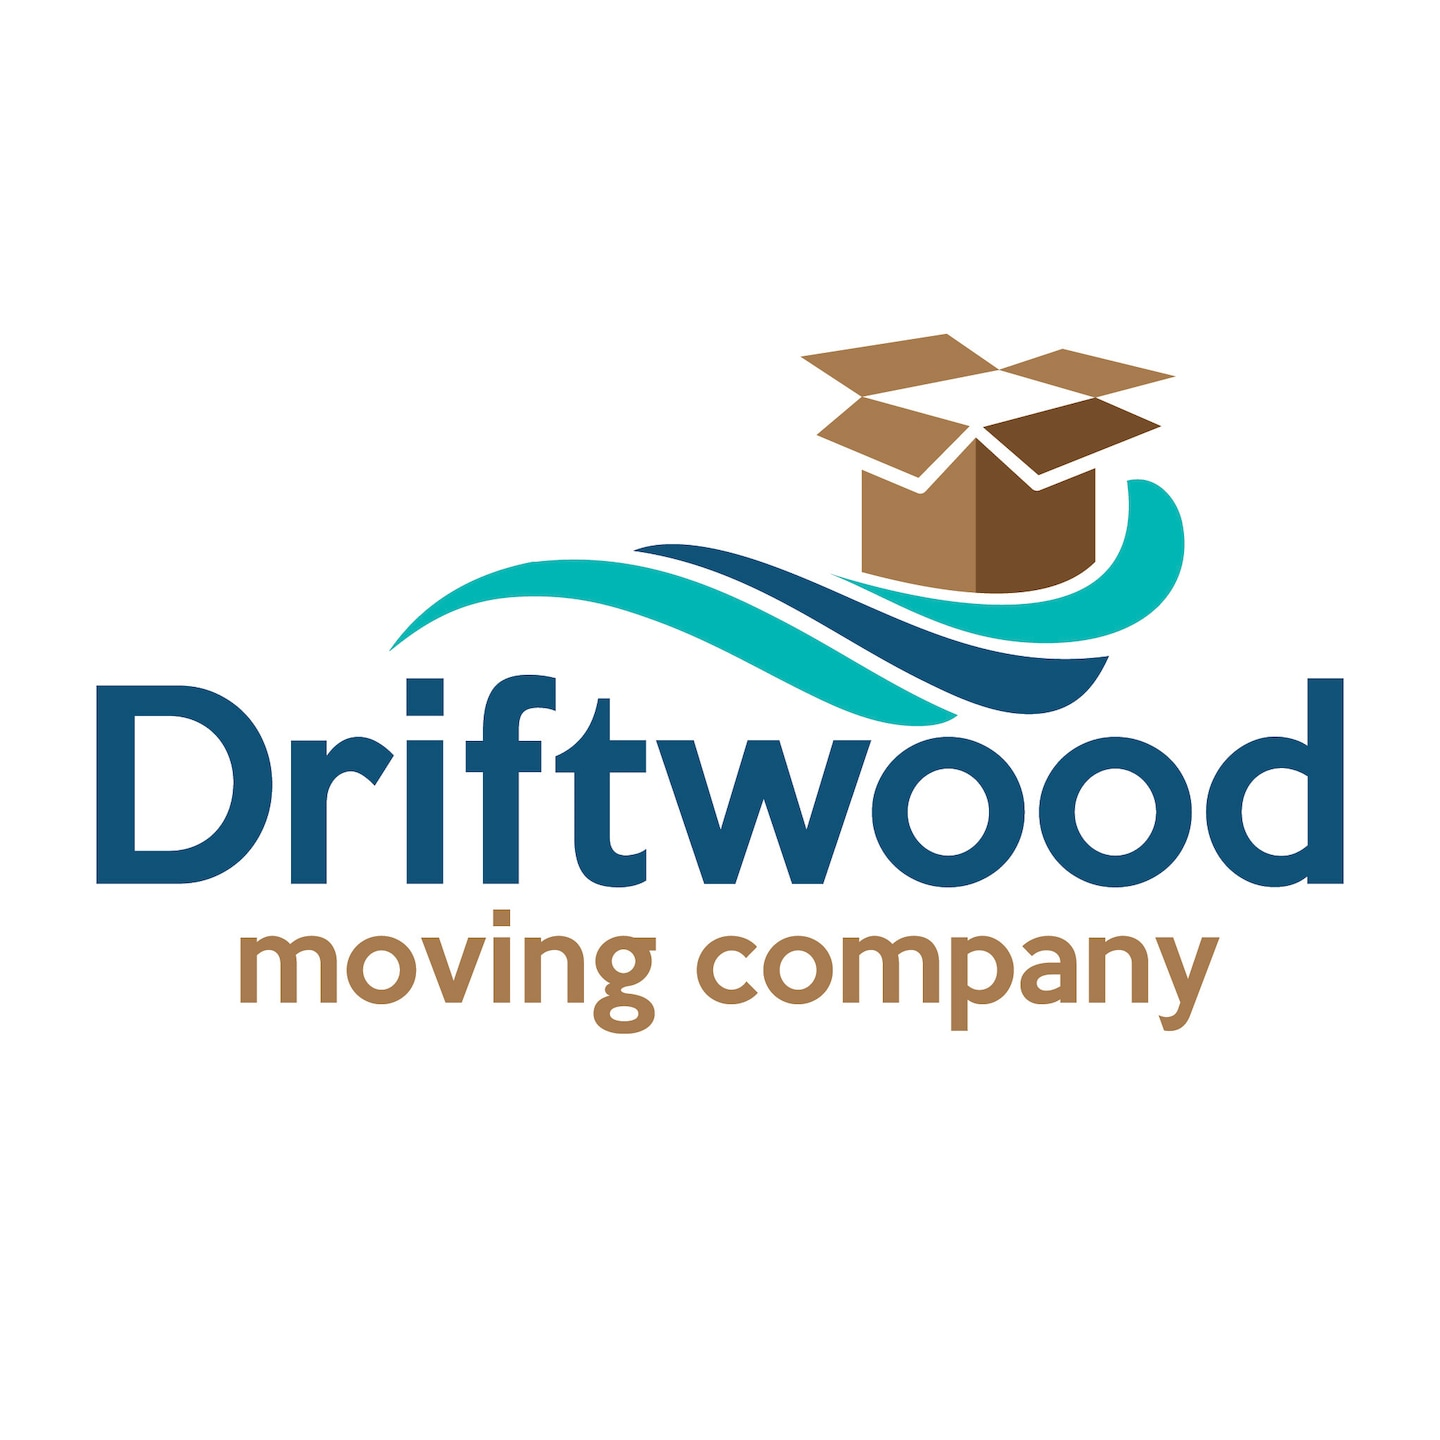 Driftwood Moving Company